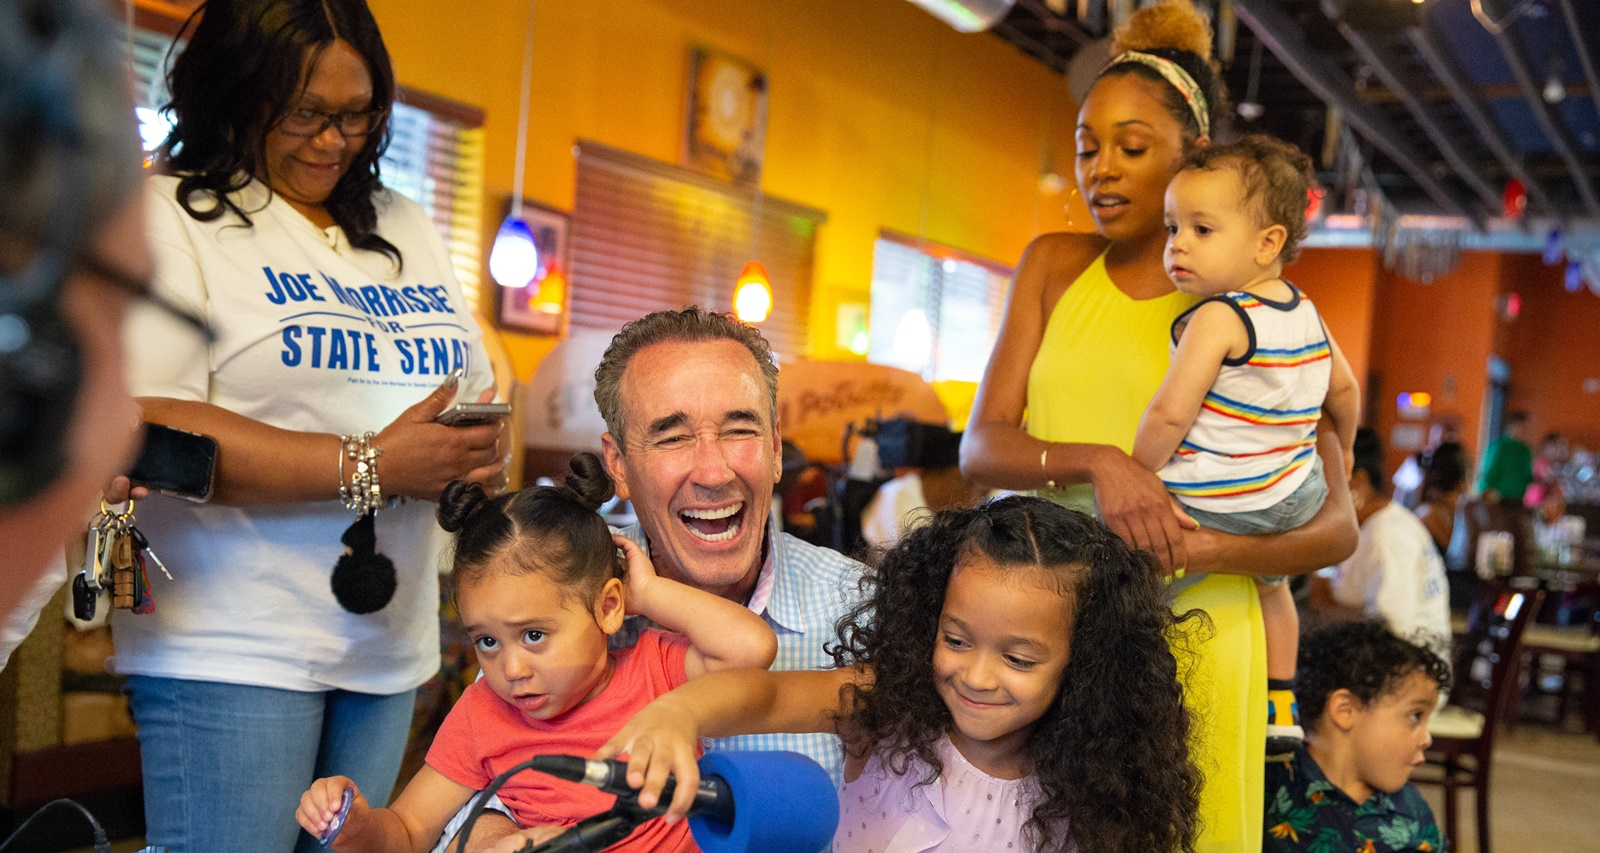 Joe Morrissey Wife: Myrna Pride Wiki, Age, Family and Facts To Know